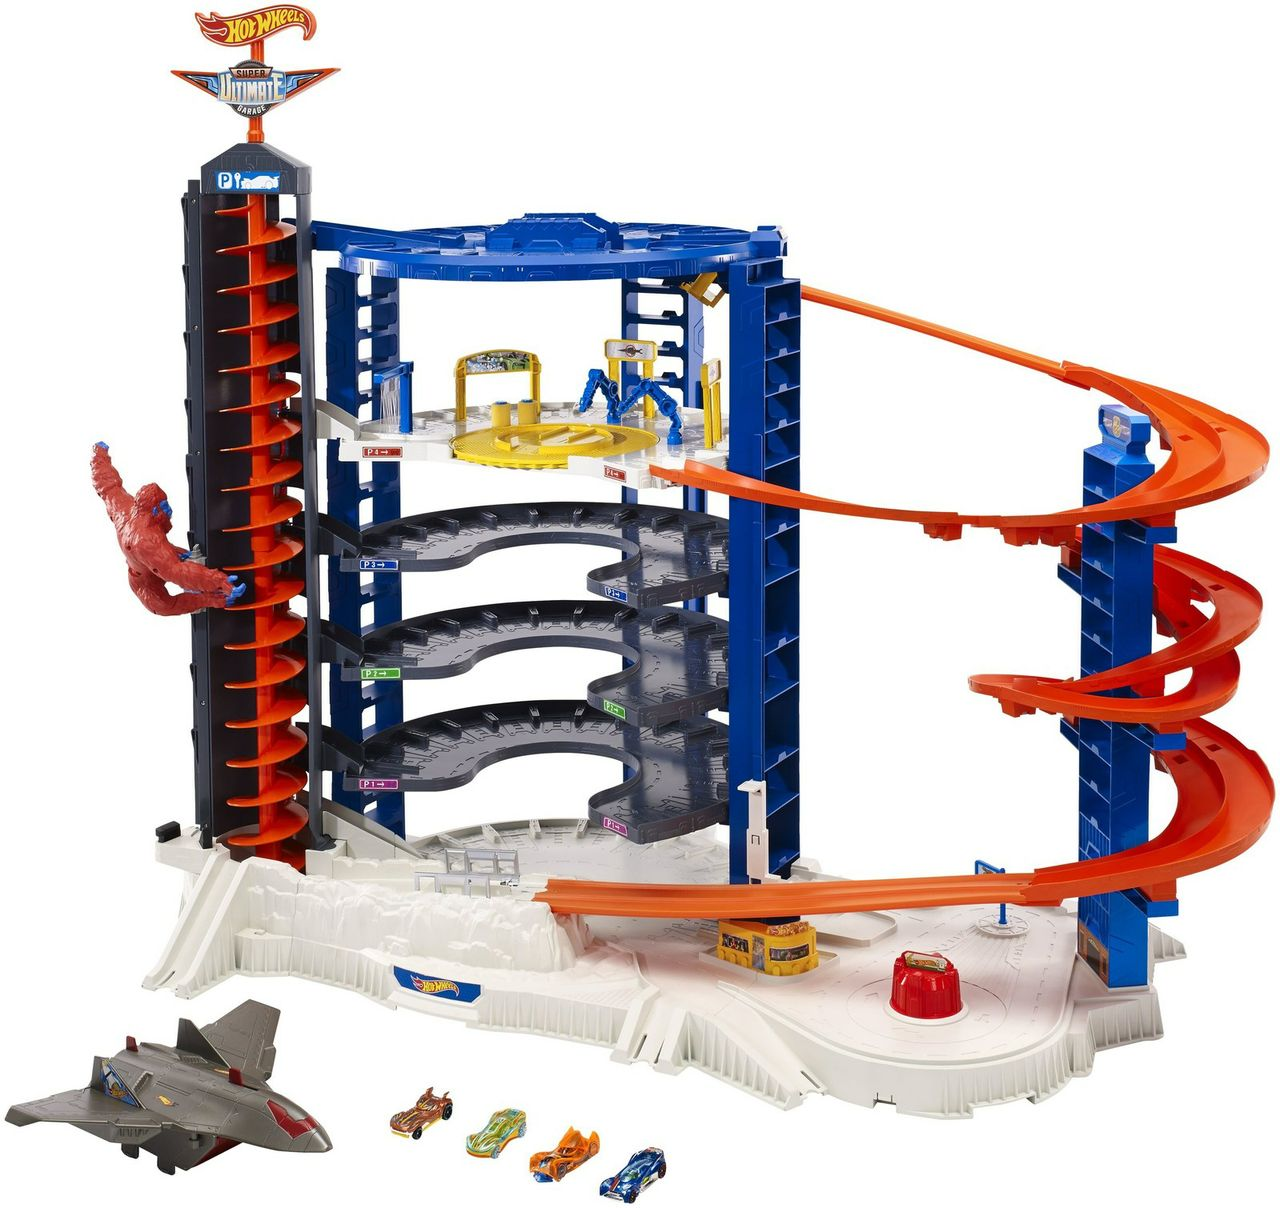 Mattel® Wins Toy Of The Year Award For The Hot Wheels® Super Ultimate Garage In The Playset Of The Year Category